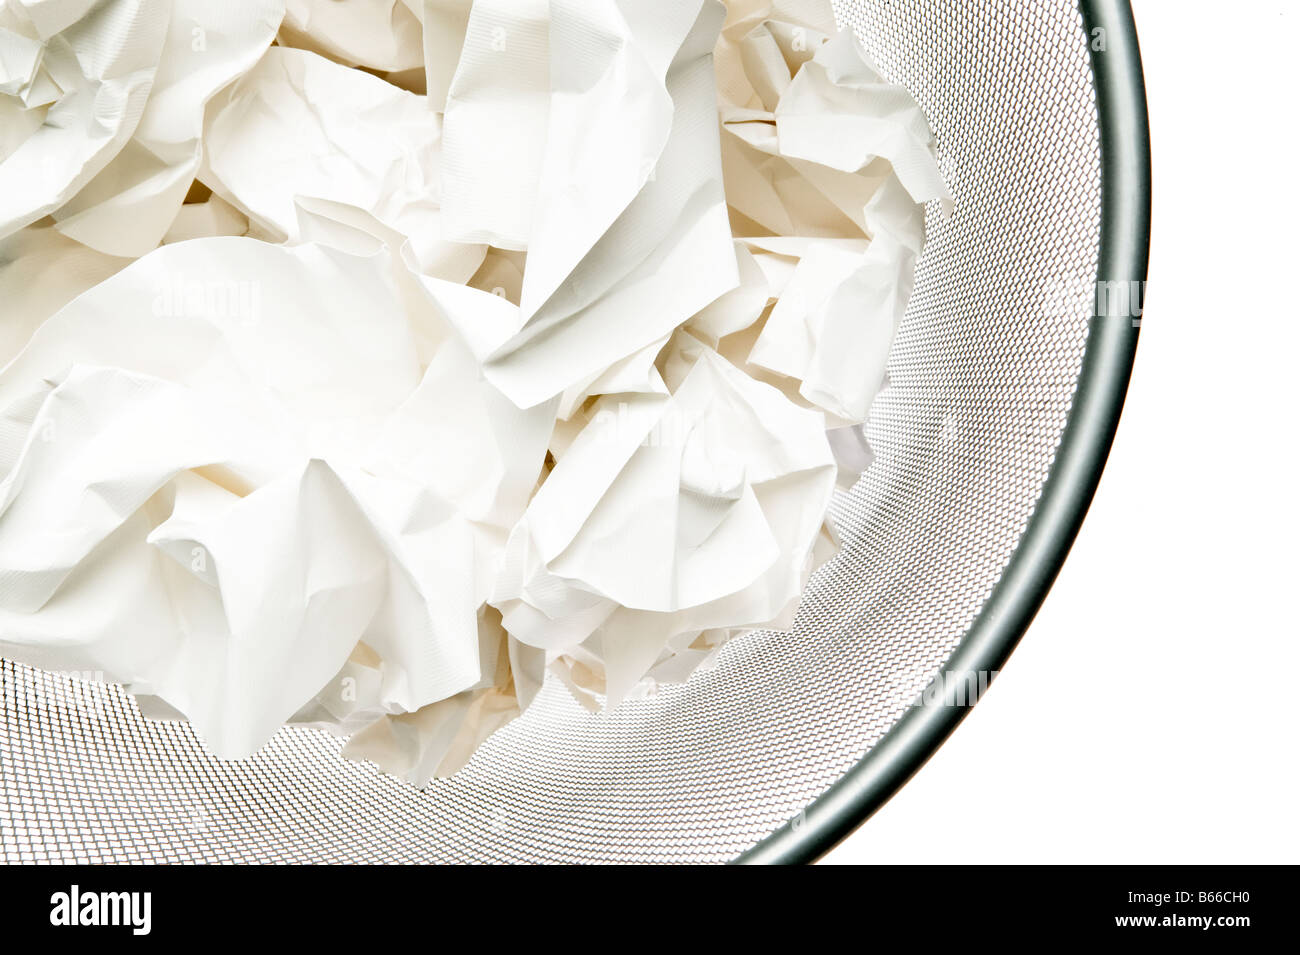 grey metal waste paper basket filled with crumpled white paper Stock Photo